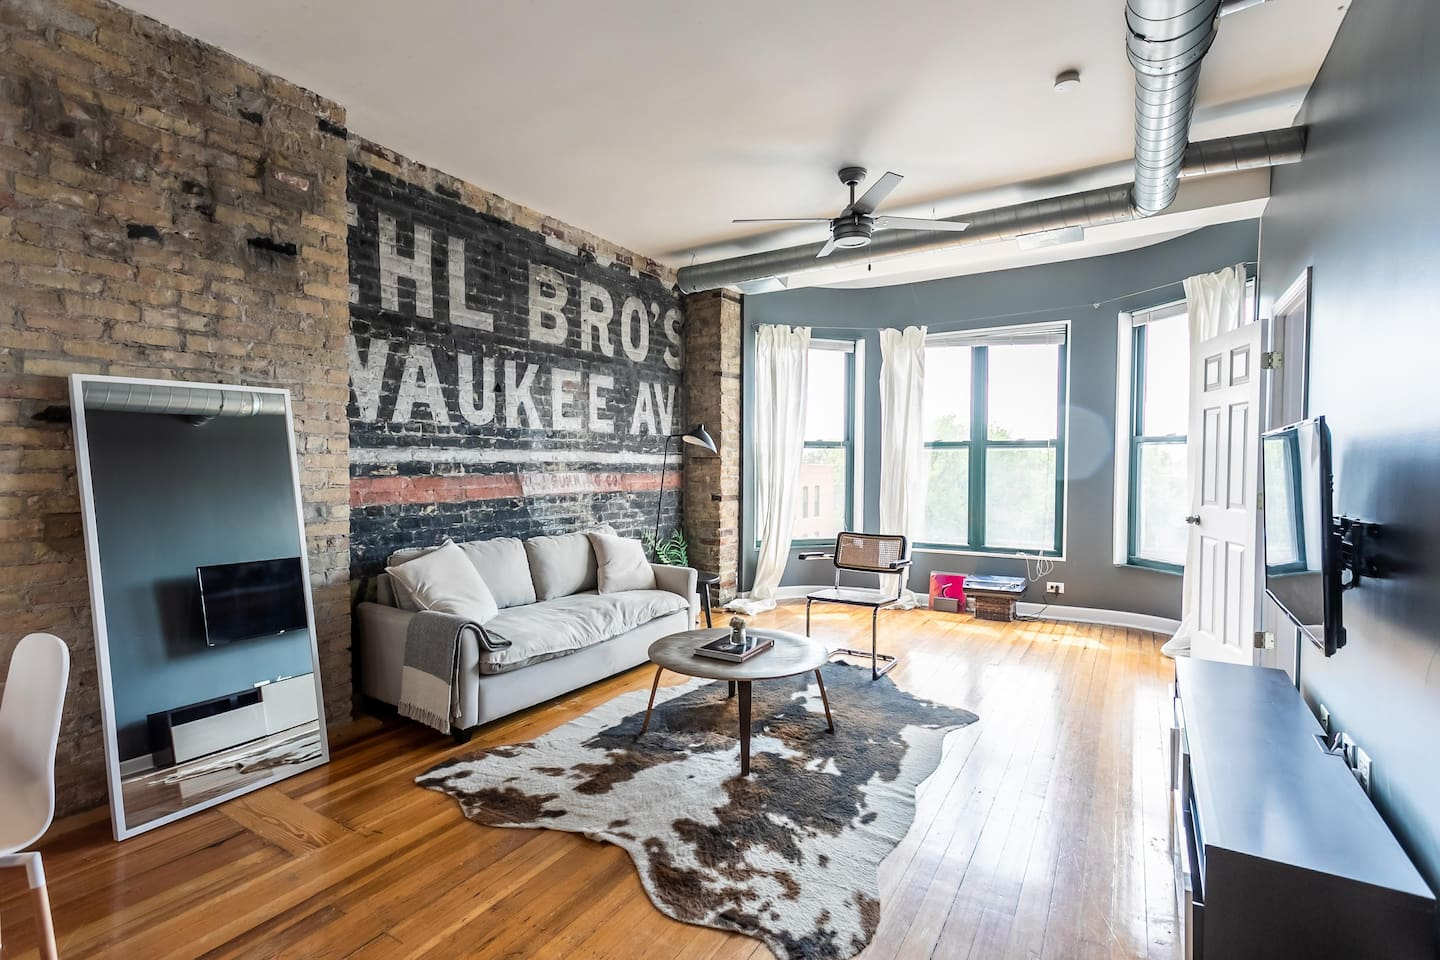 """The location is fantastic for exploring Wicker Park, as well as other Chicago attractions. Super walkable neighborhood with lots of great restaurants and coffee shops."""